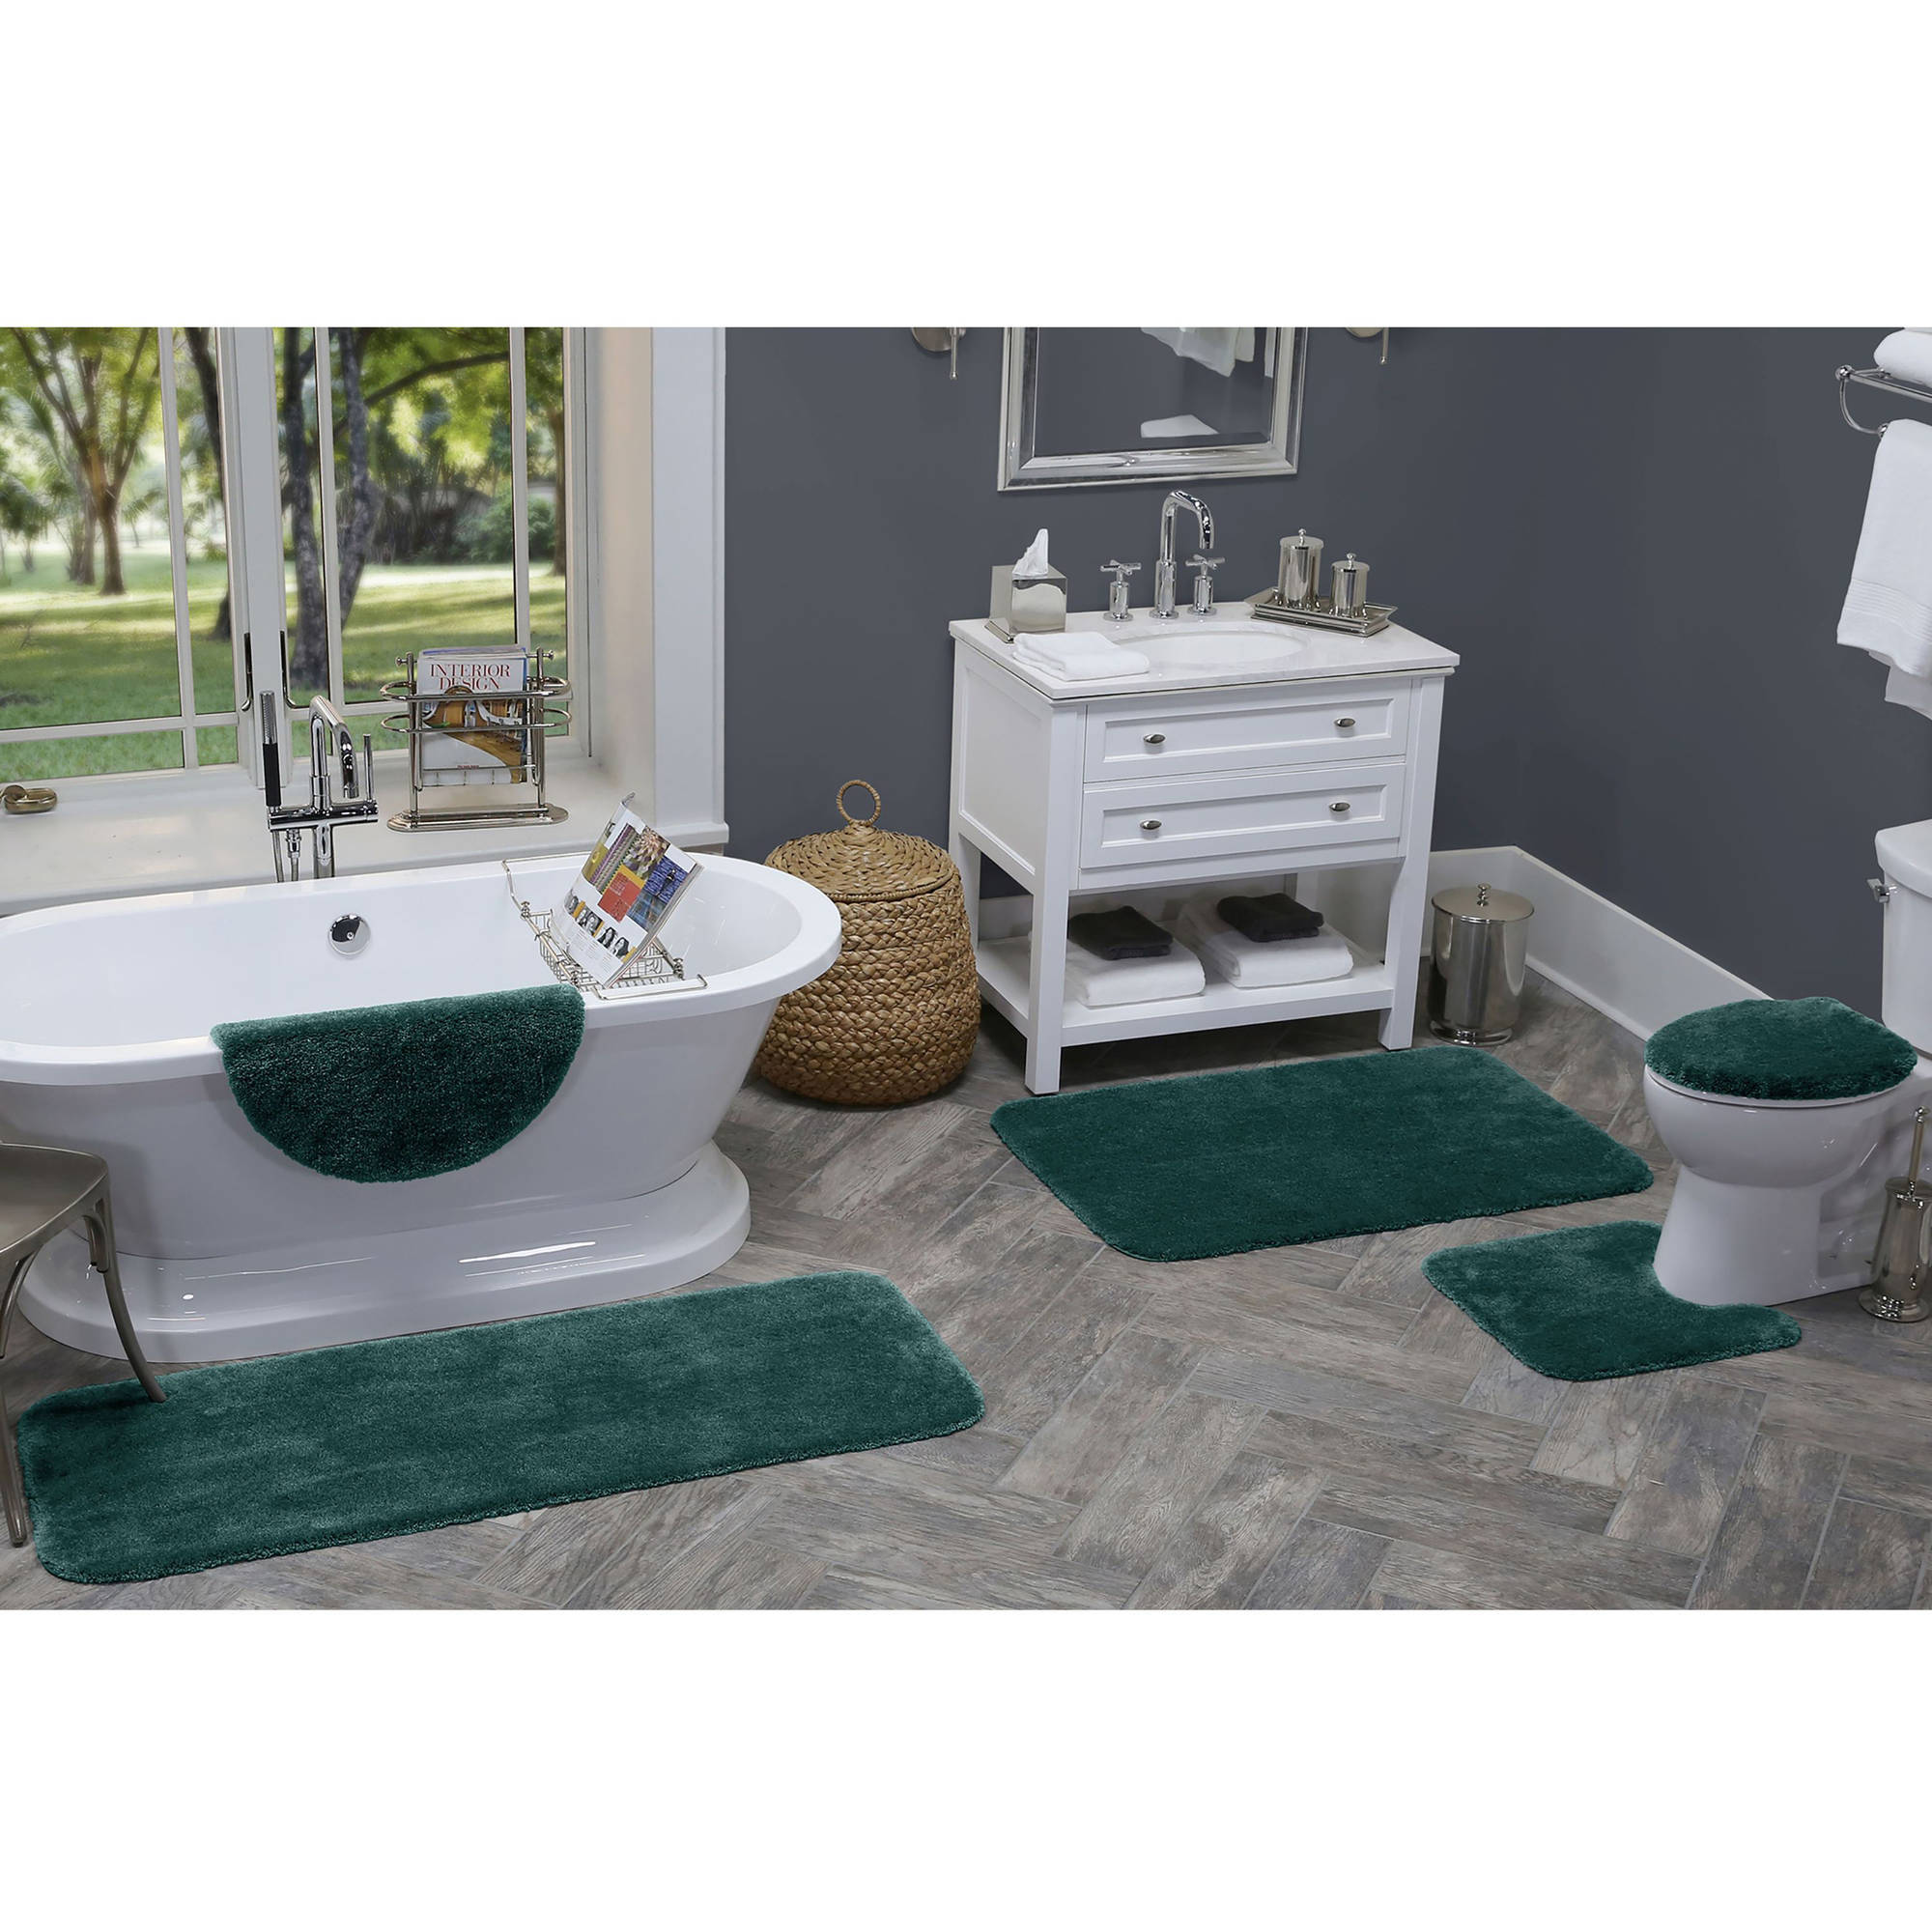 better homes and gardens bathrooms better homes and gardens extra soft bath rug collection bathrooms - Better Homes And Garden Bathroom Accessories